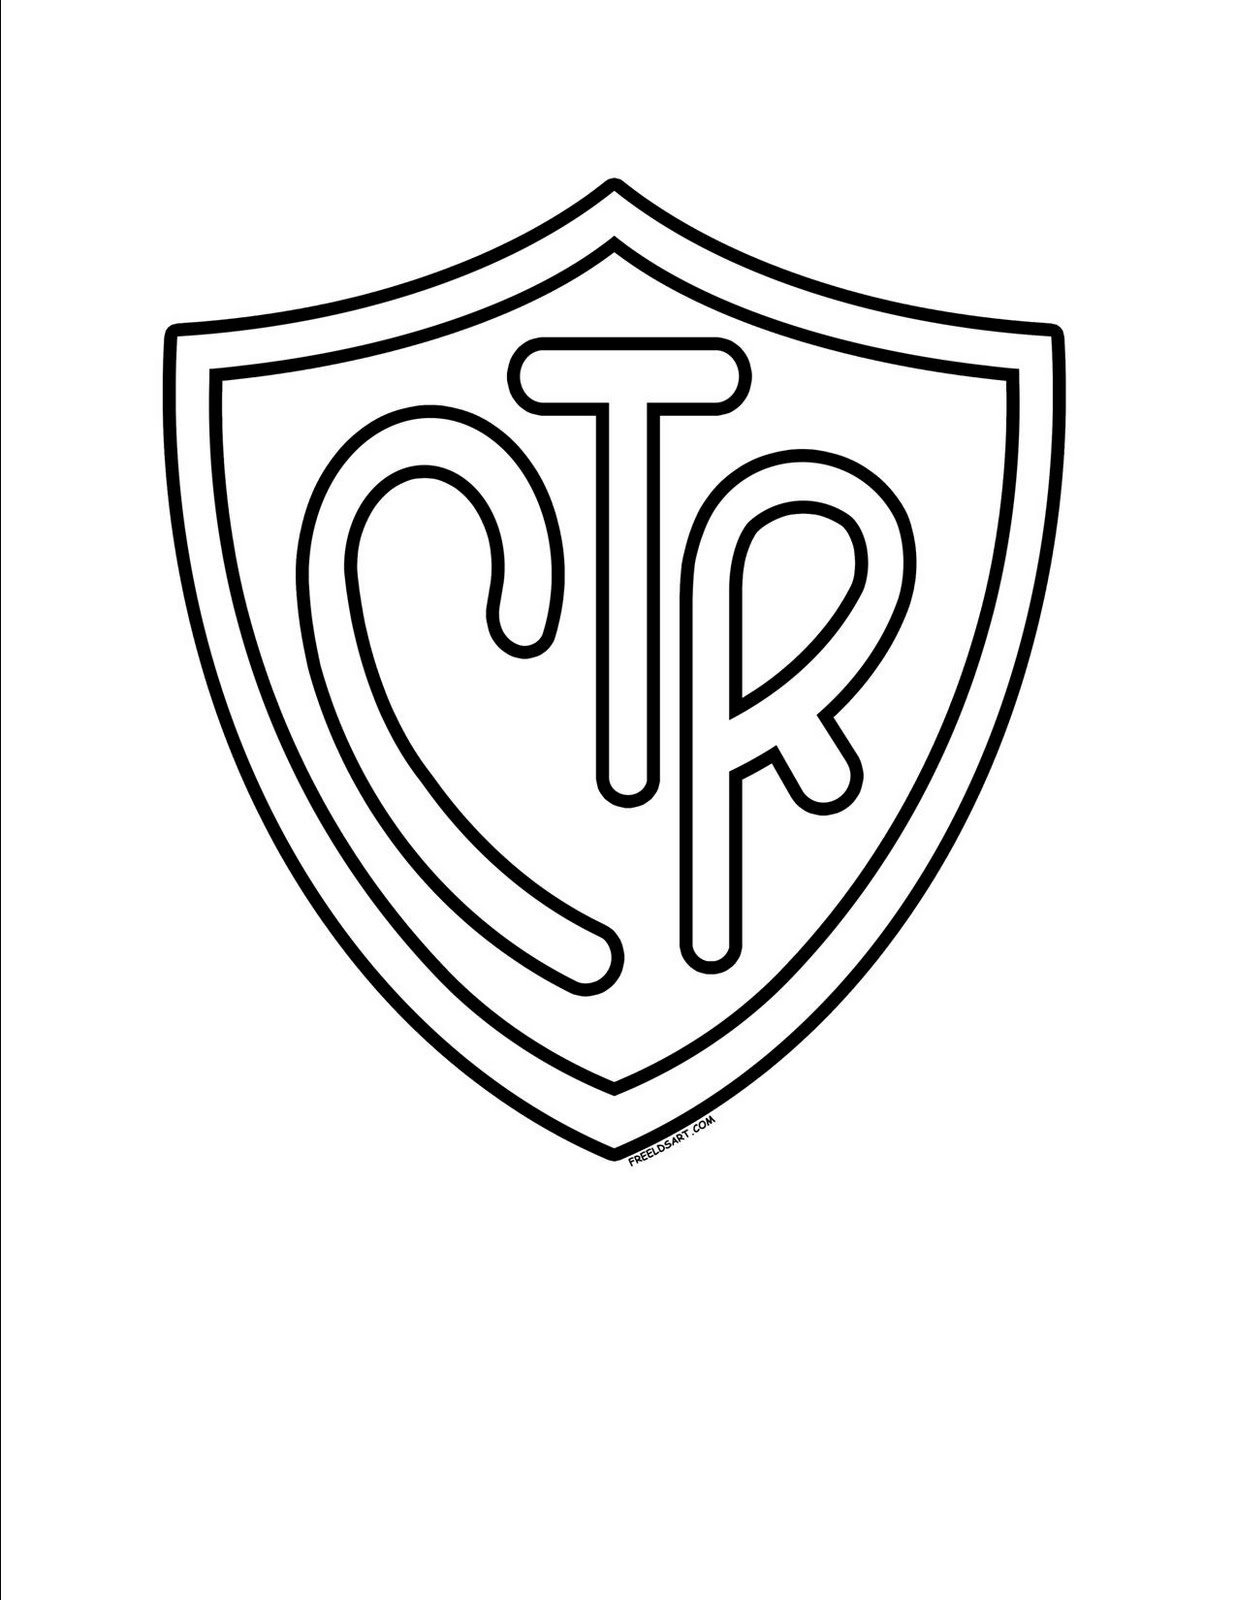 ctr coloring page - q=choose the right lds